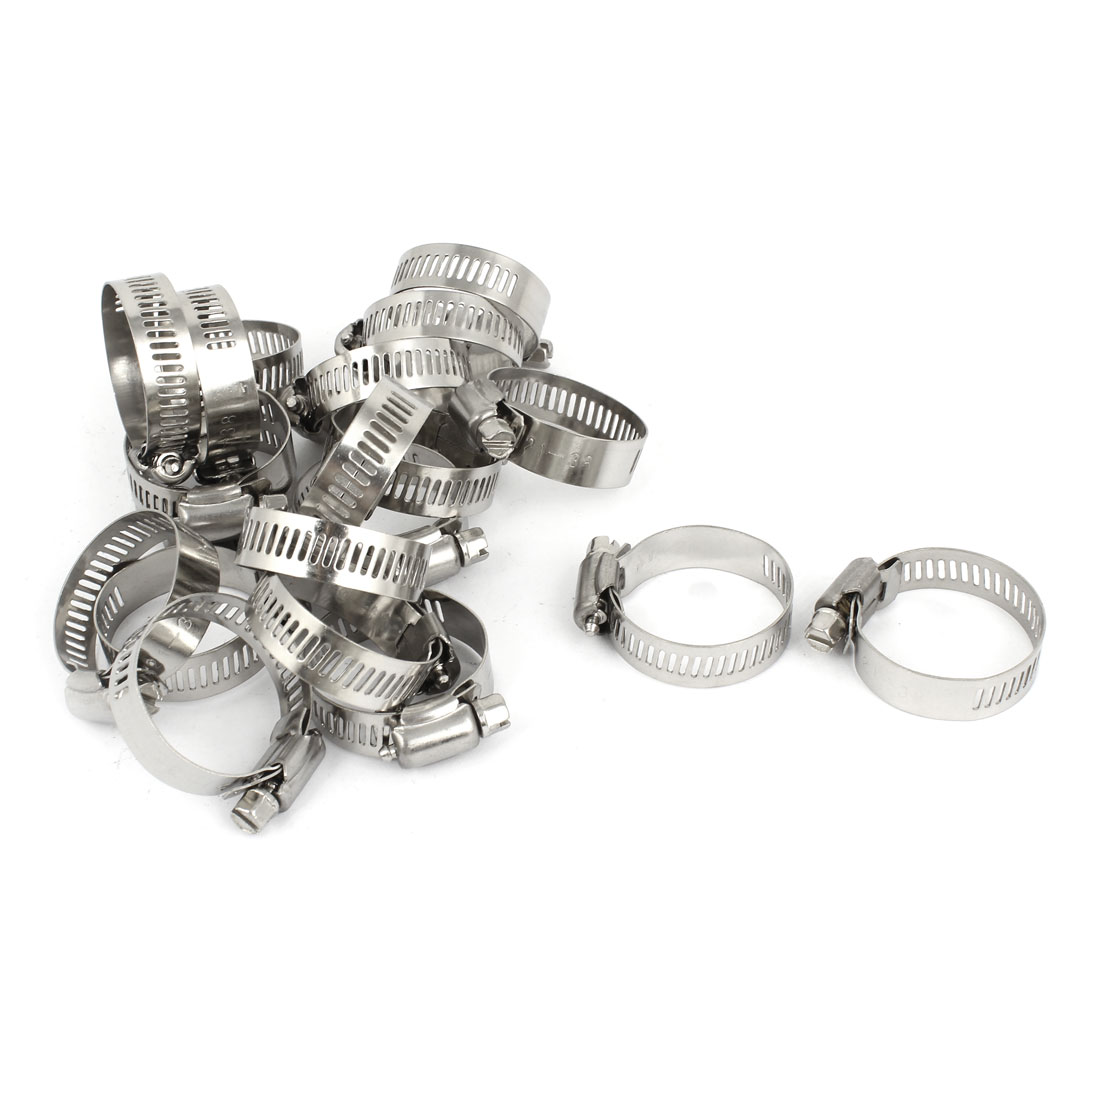 Silver Tone 21-38mm Adjustable Worm Gear Hose Pipe Fitting Clamps 25 Pcs